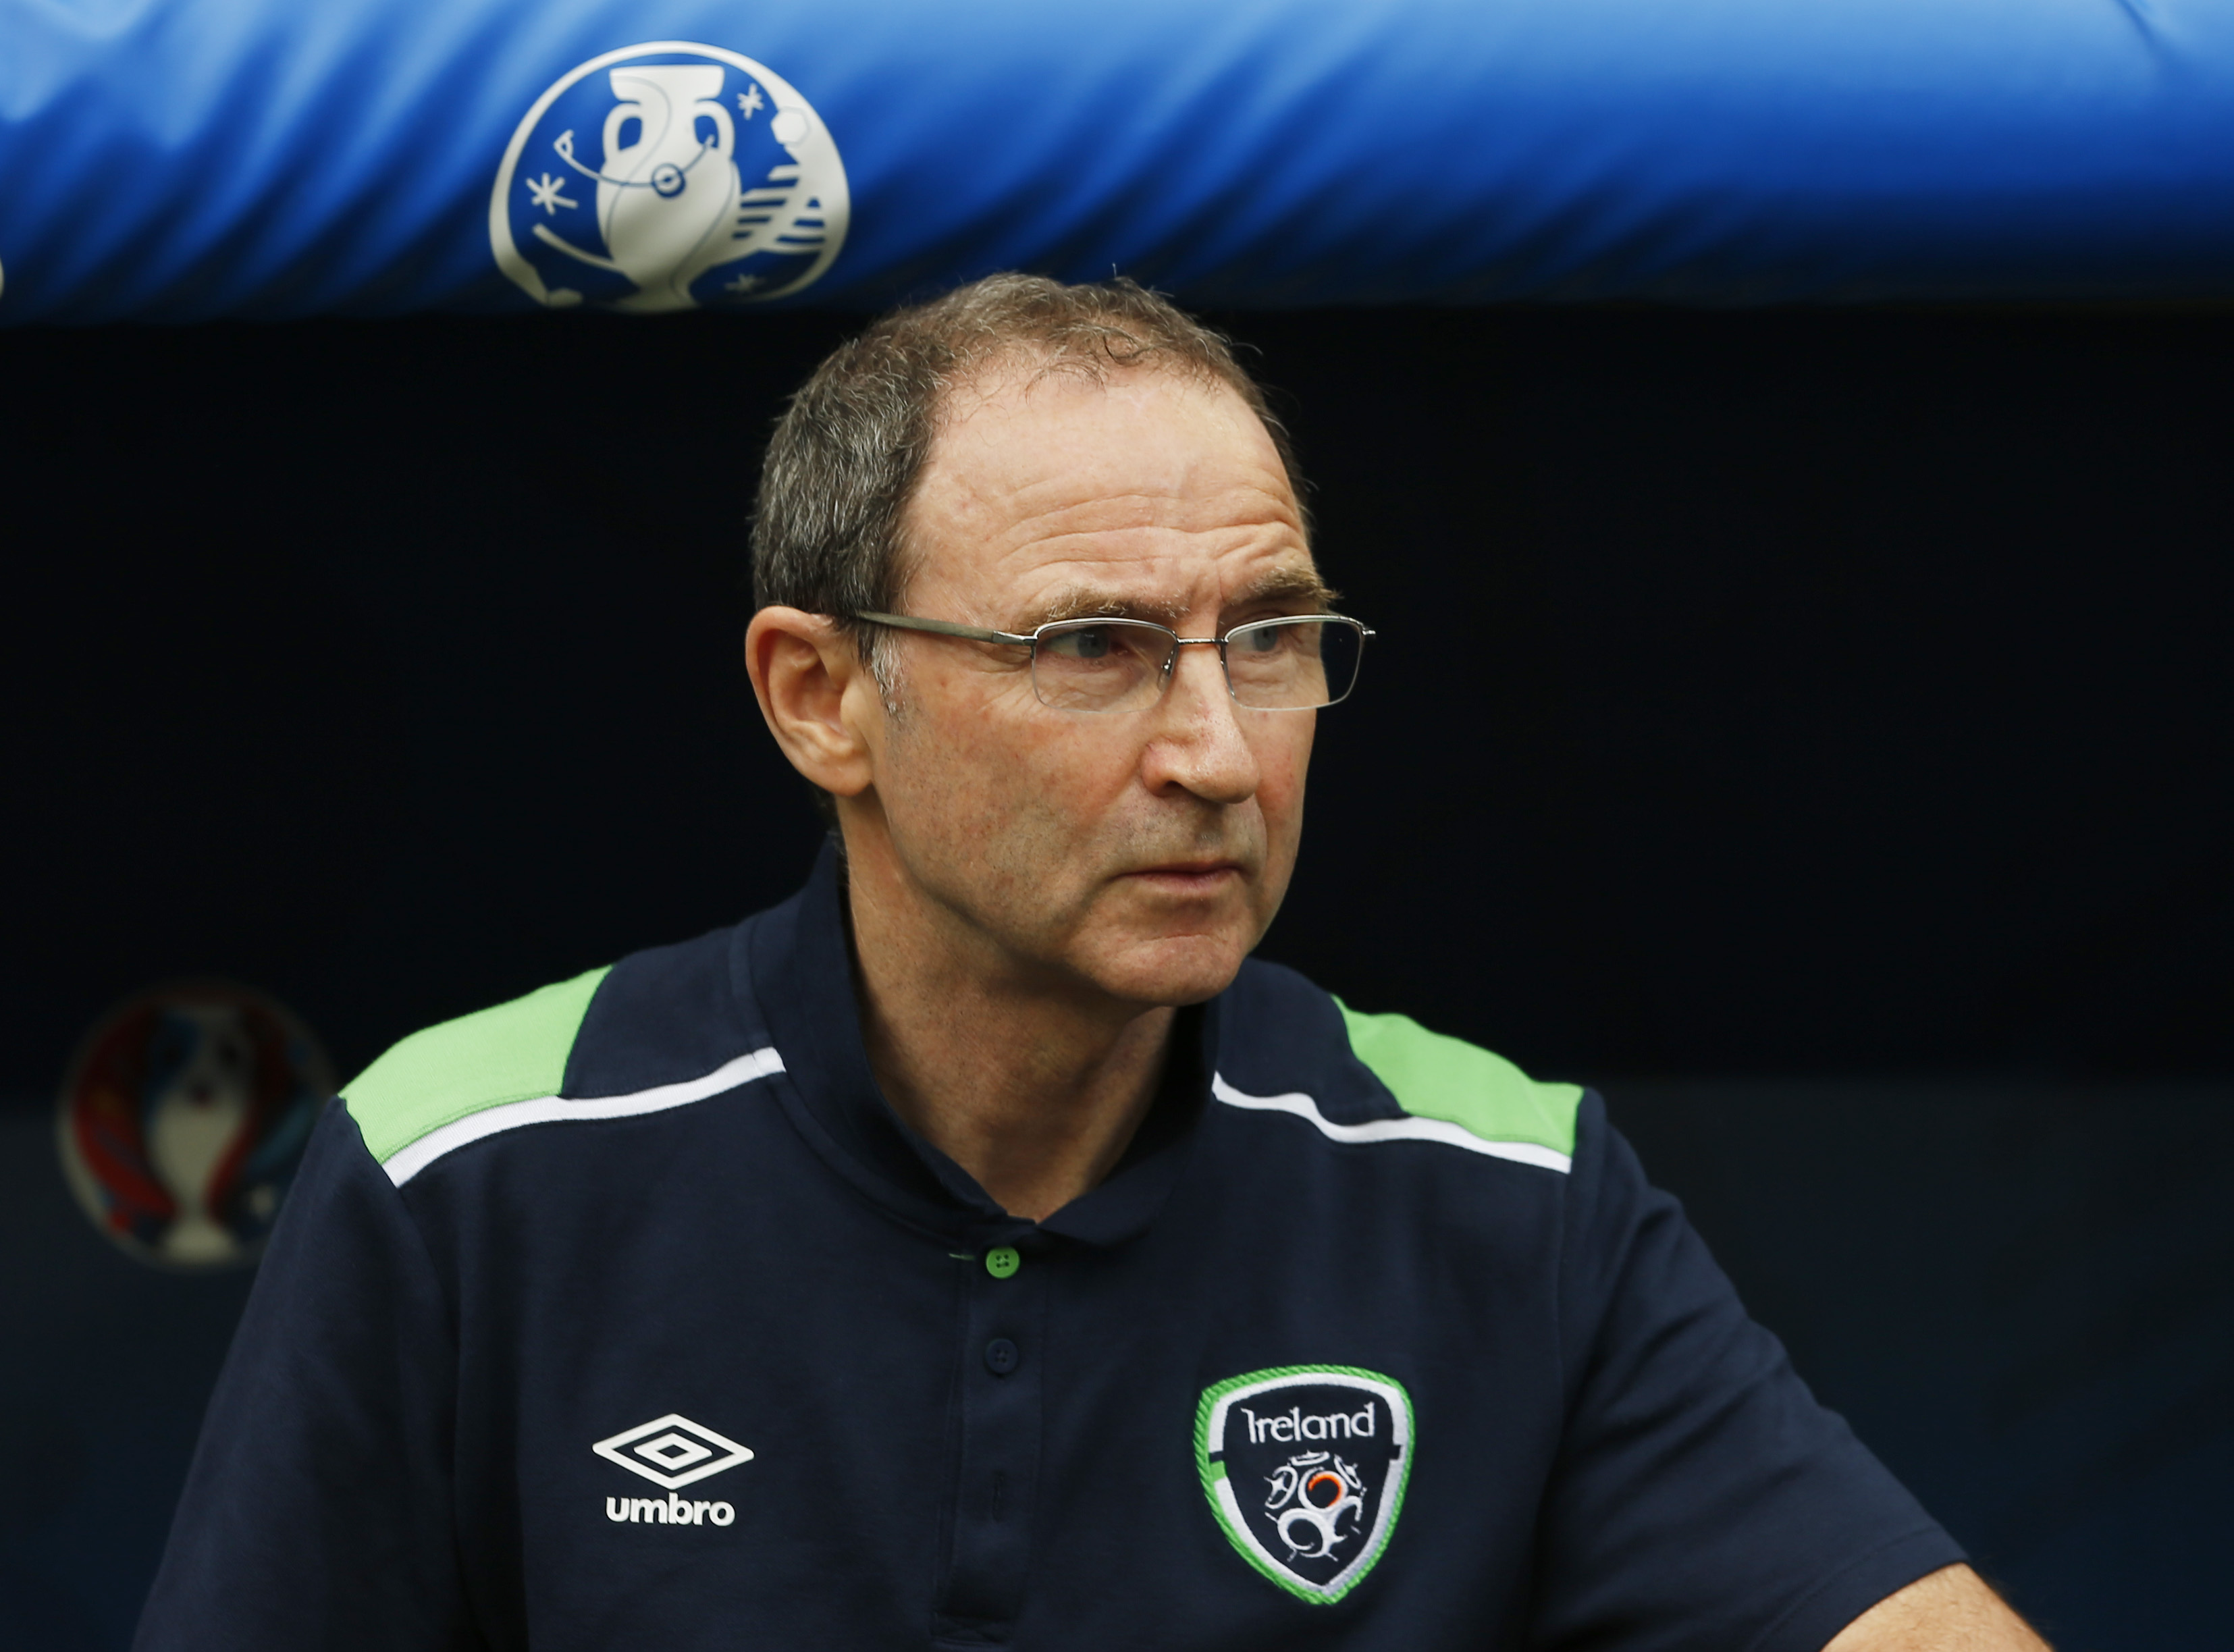 Euro 2016: We have to take our medicine, says Ireland's O'Neill